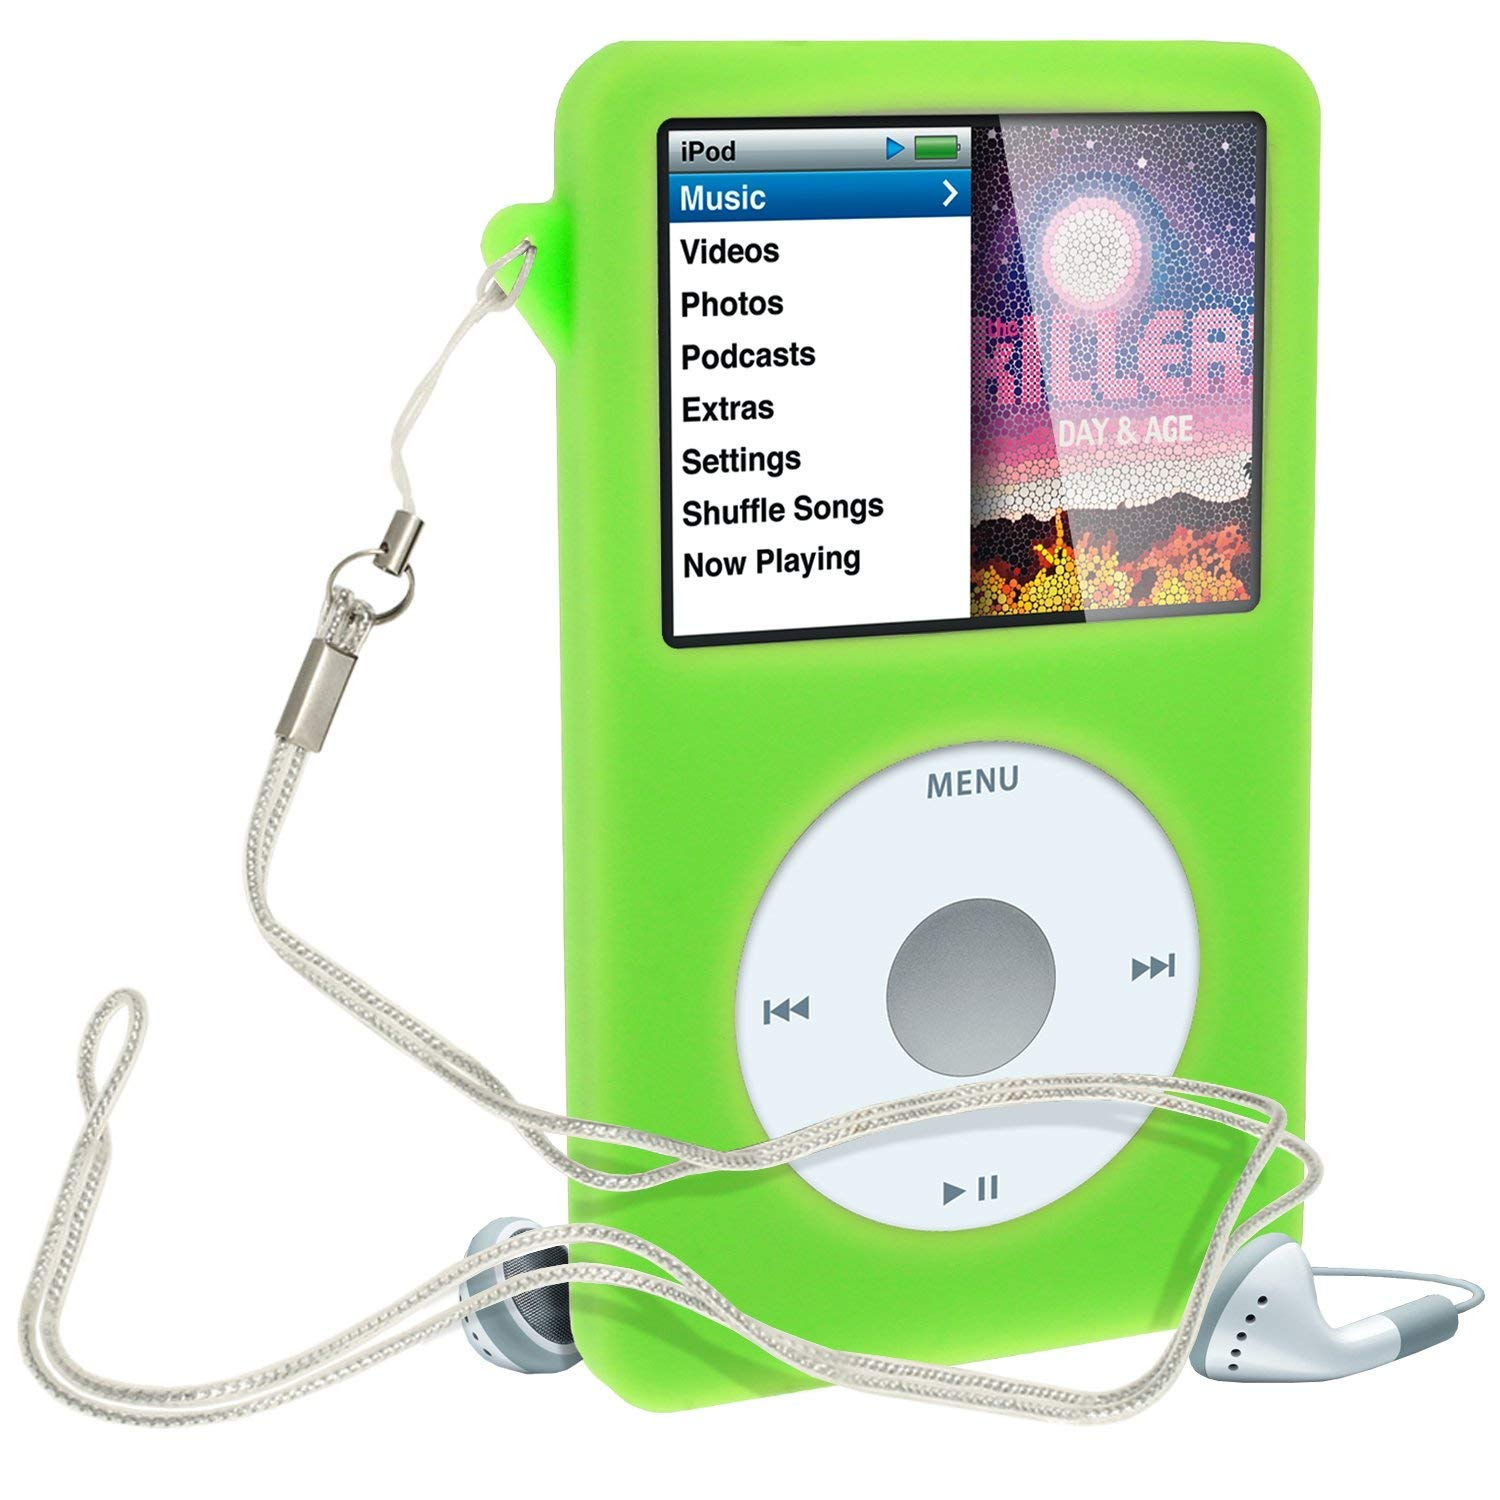 8d9b8a0f472 Amazon.com: iGadgitz Green Silicone Skin Case Cover for Apple iPod Classic  80GB, 120GB & Latest 6th Generation 160gb launched Sept 09 + Screen  Protector ...